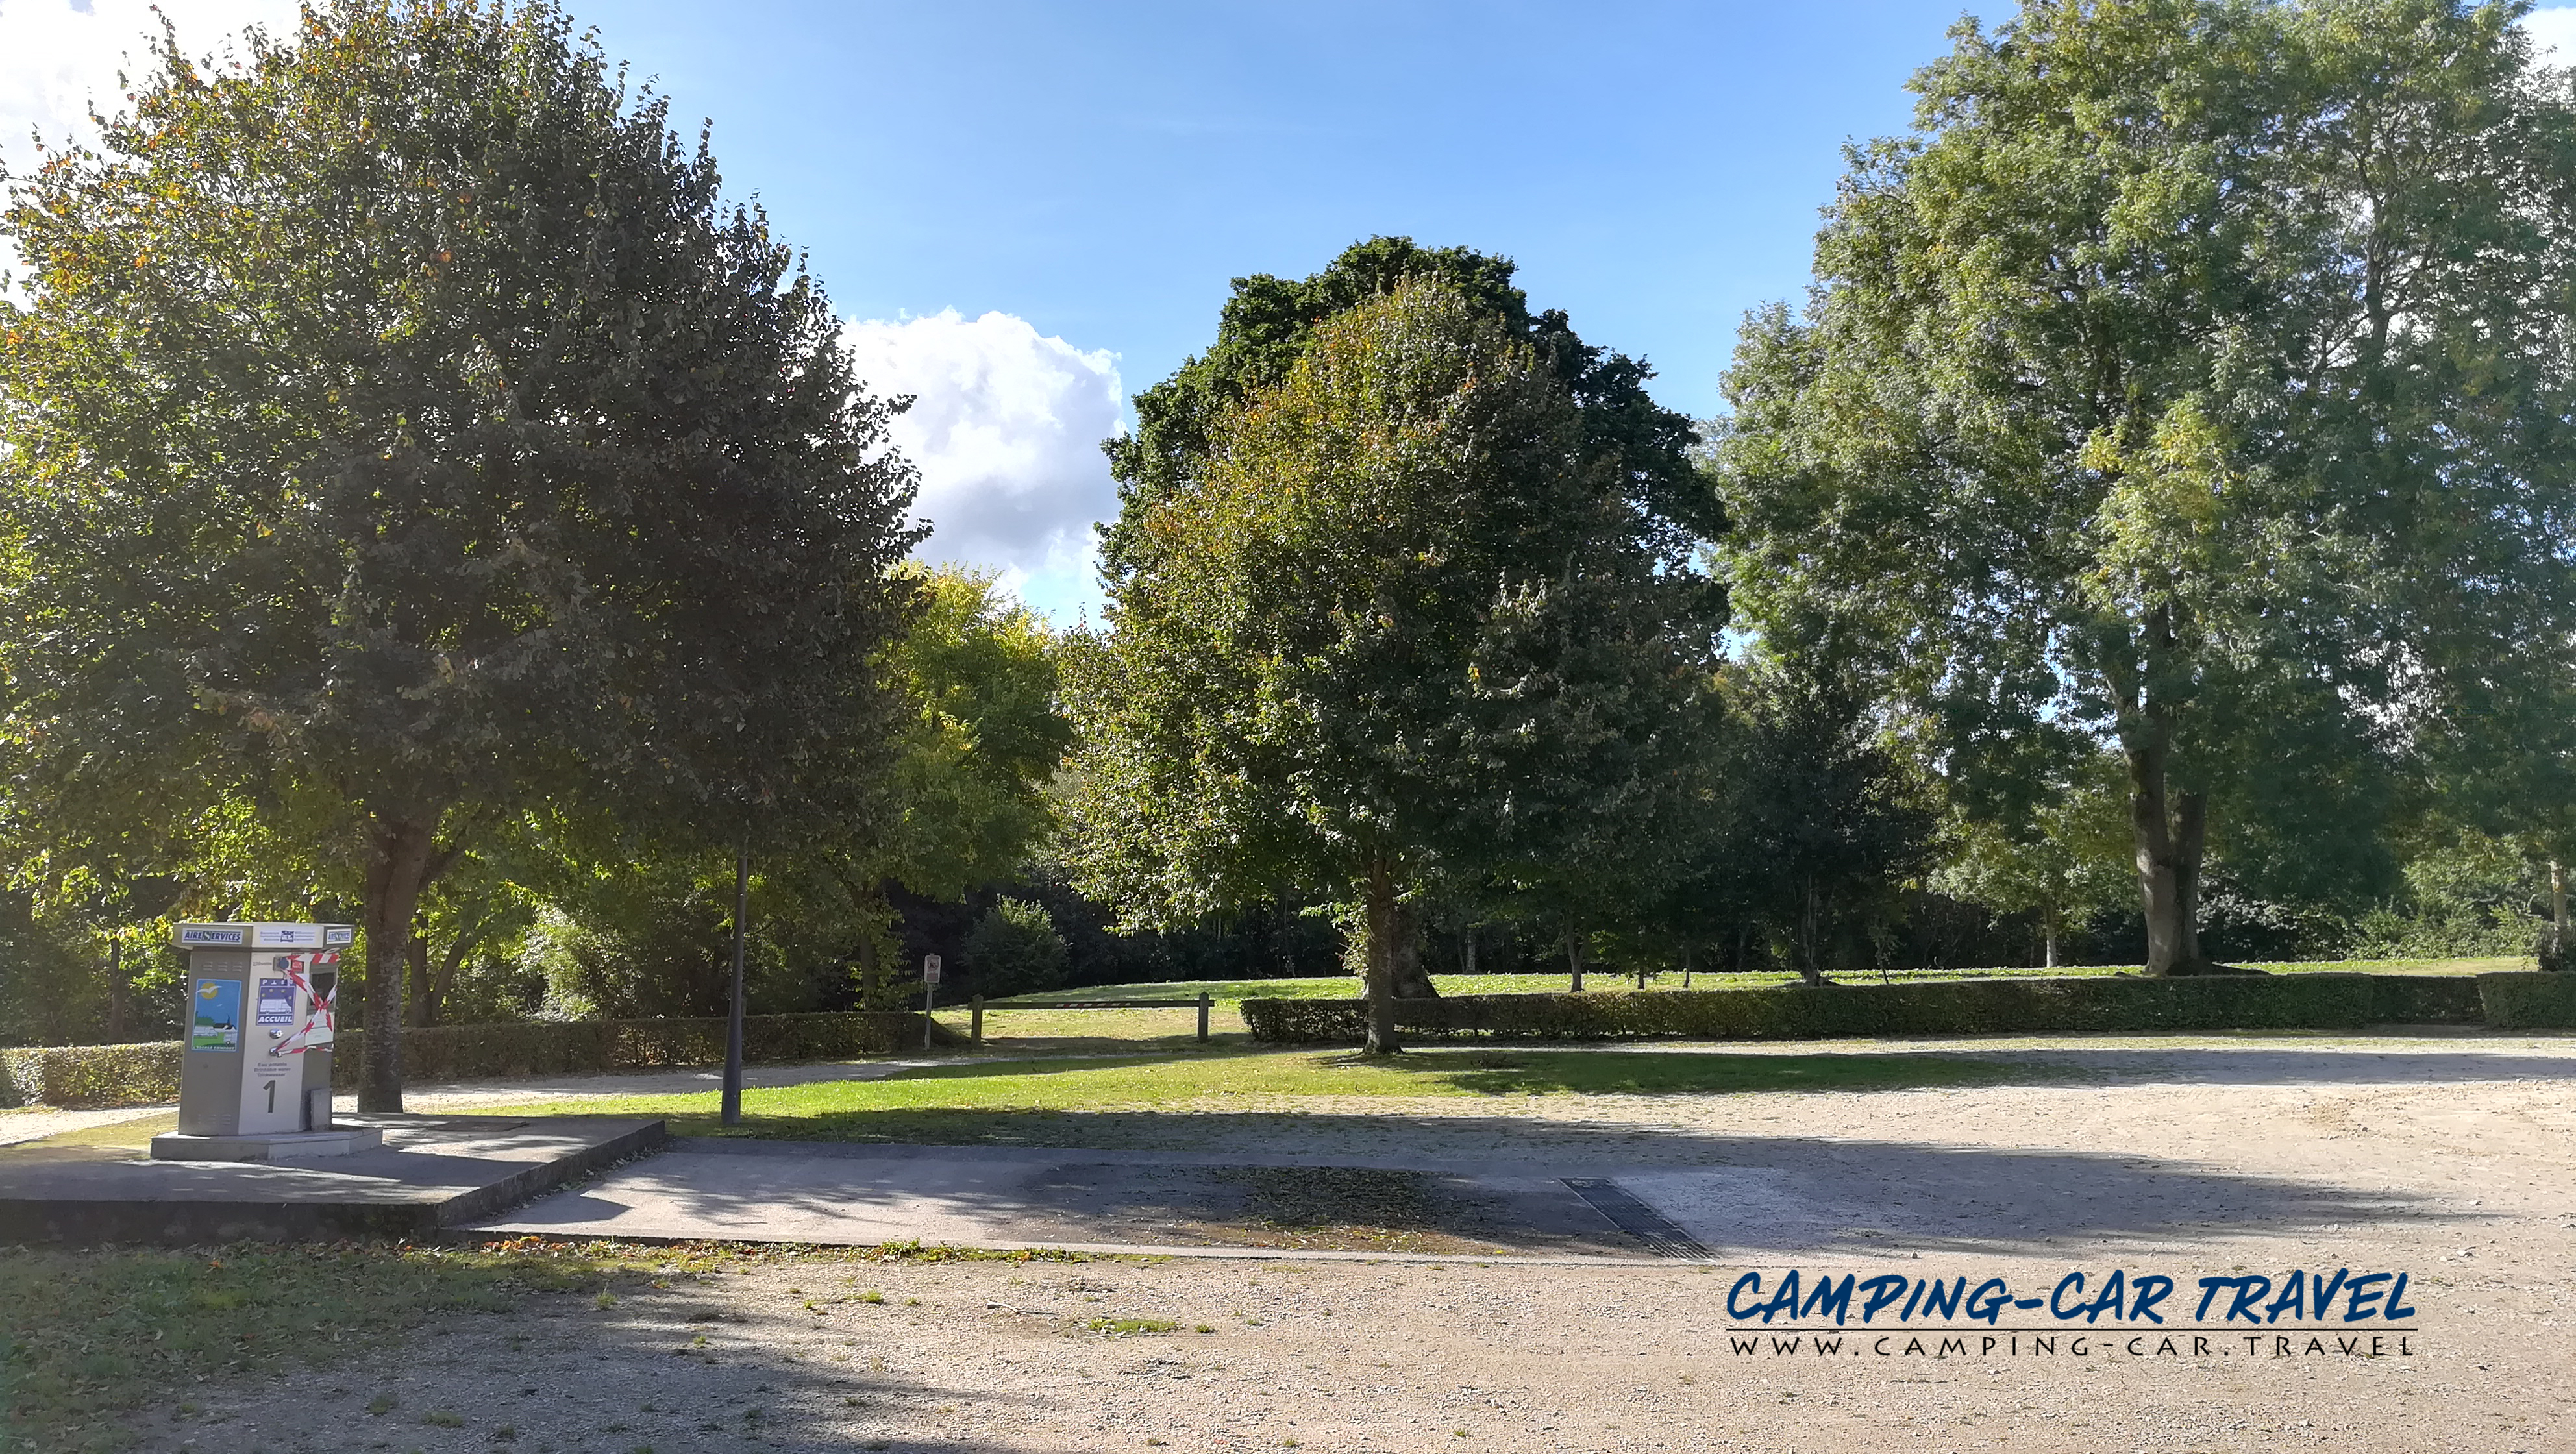 aire services camping car Bricquebec Manche Normandie